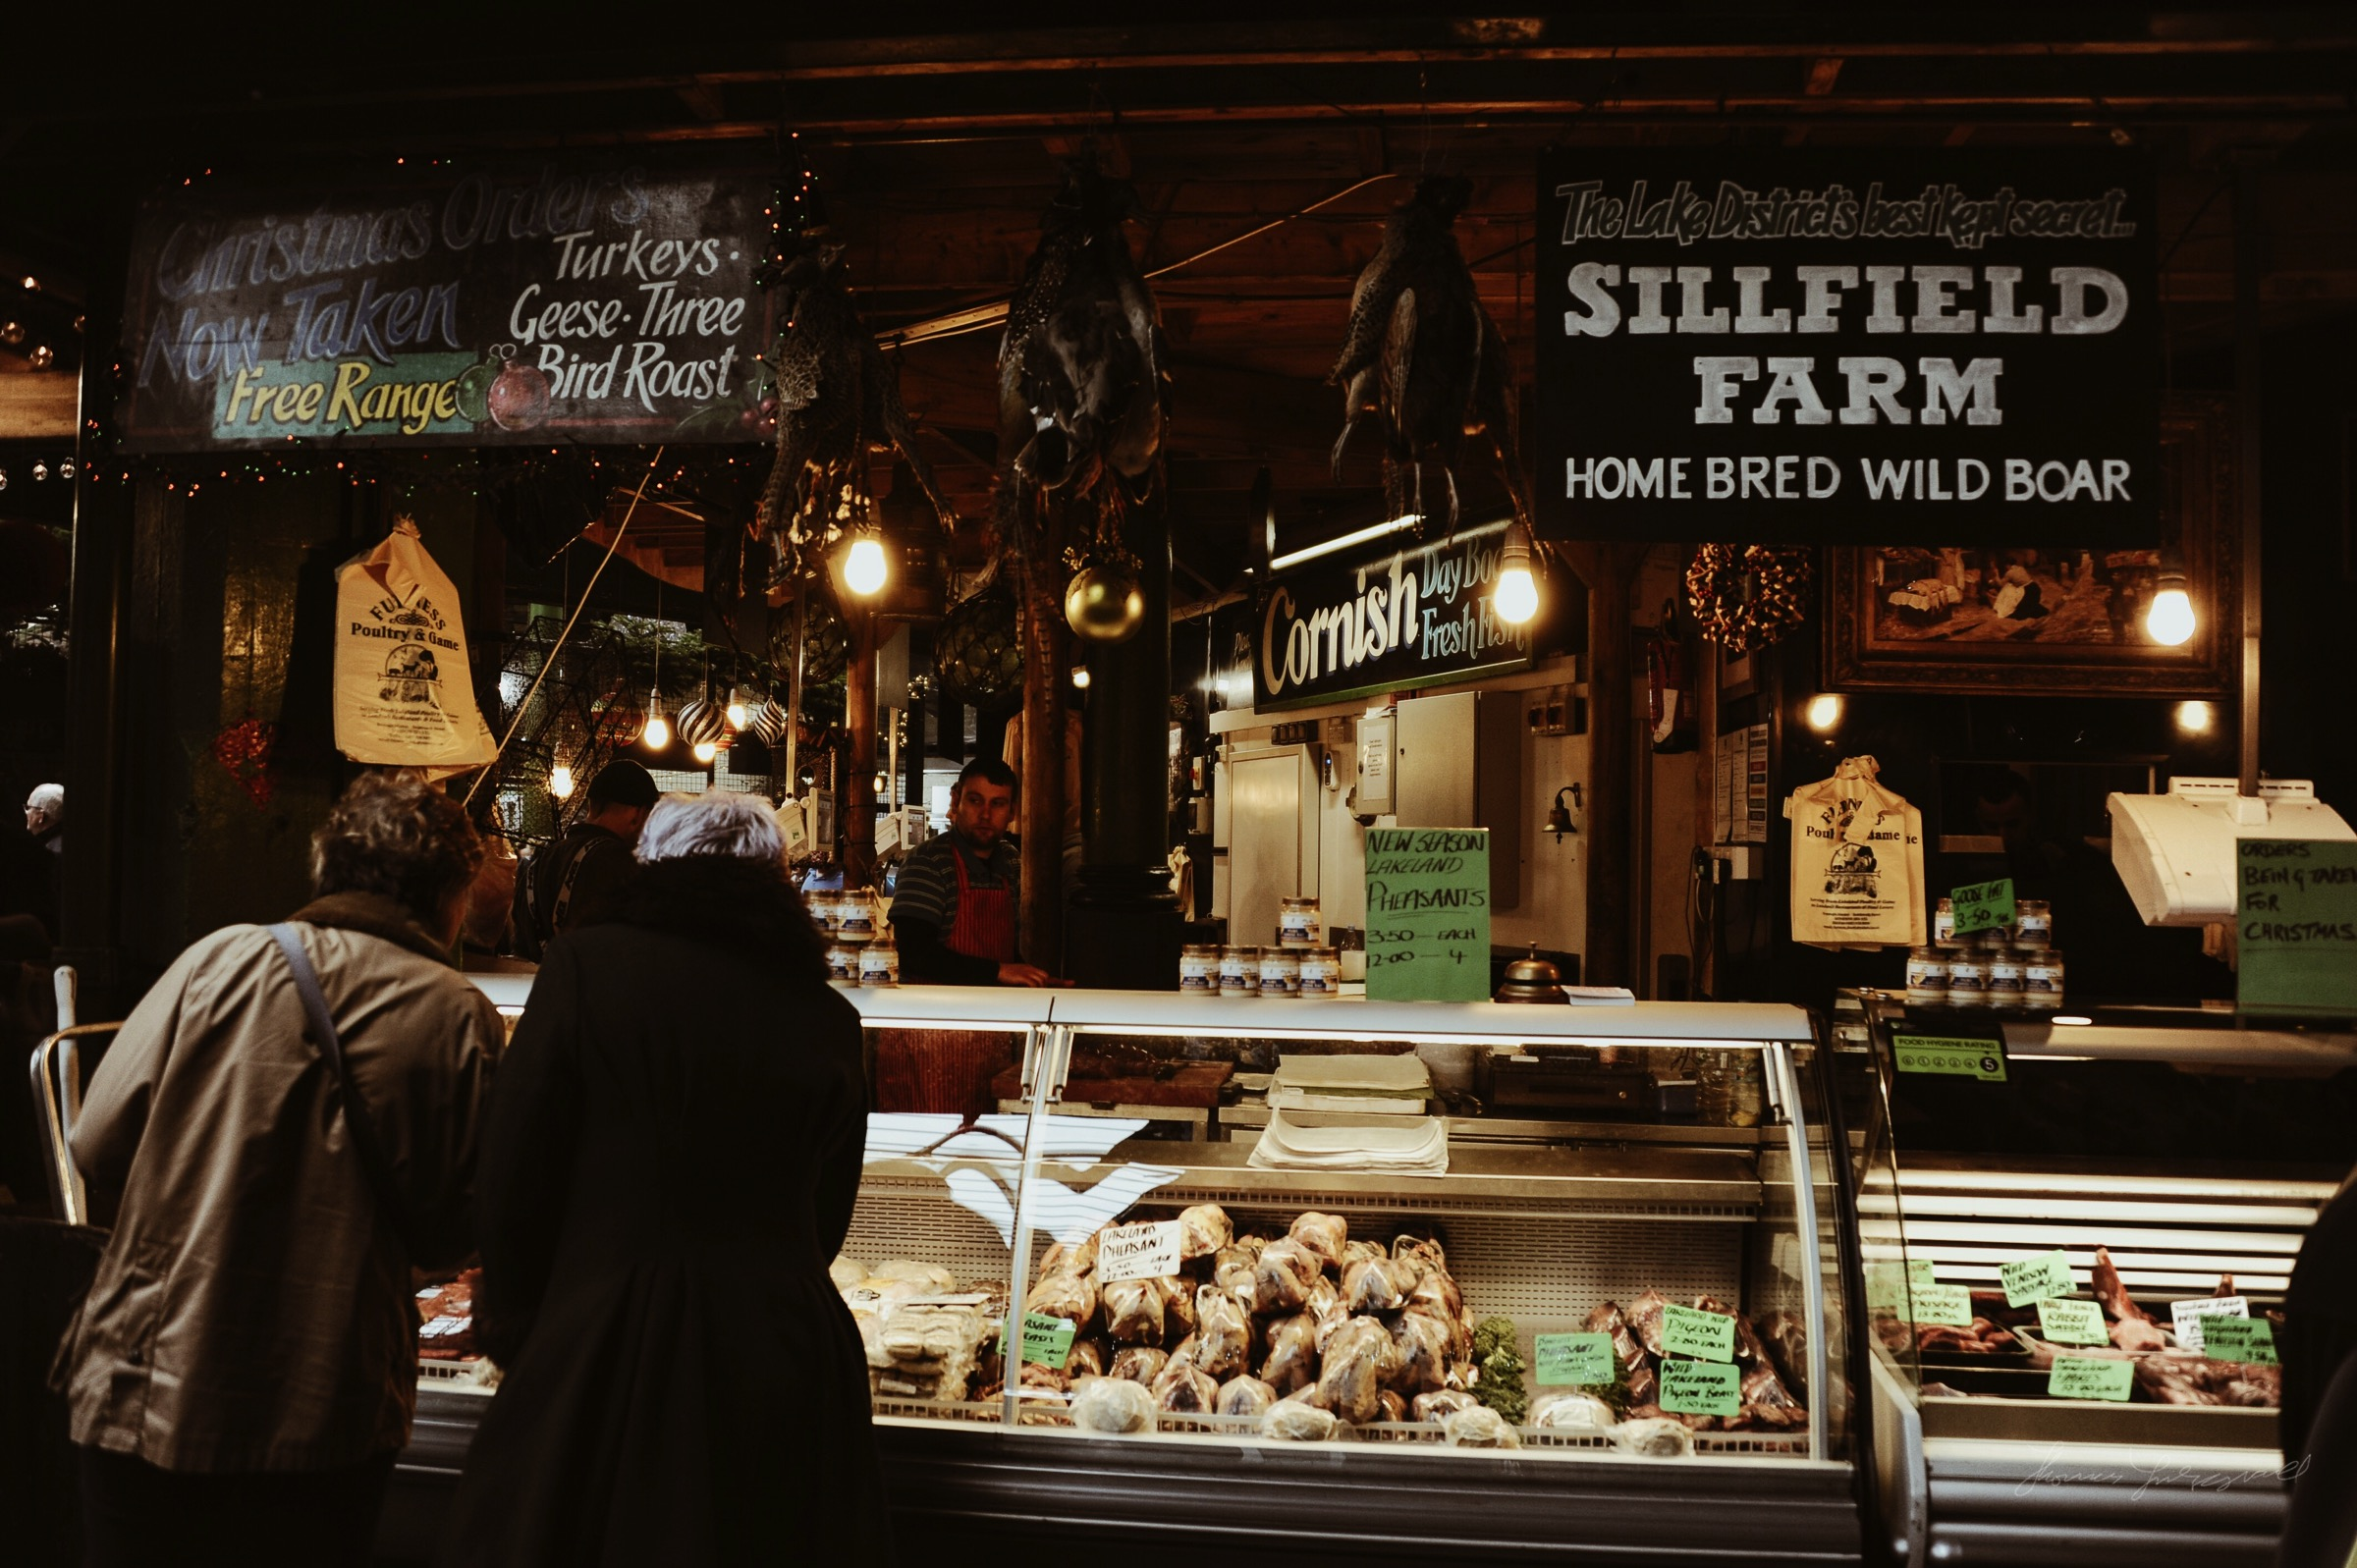 People at a butchers in the Borough market in London